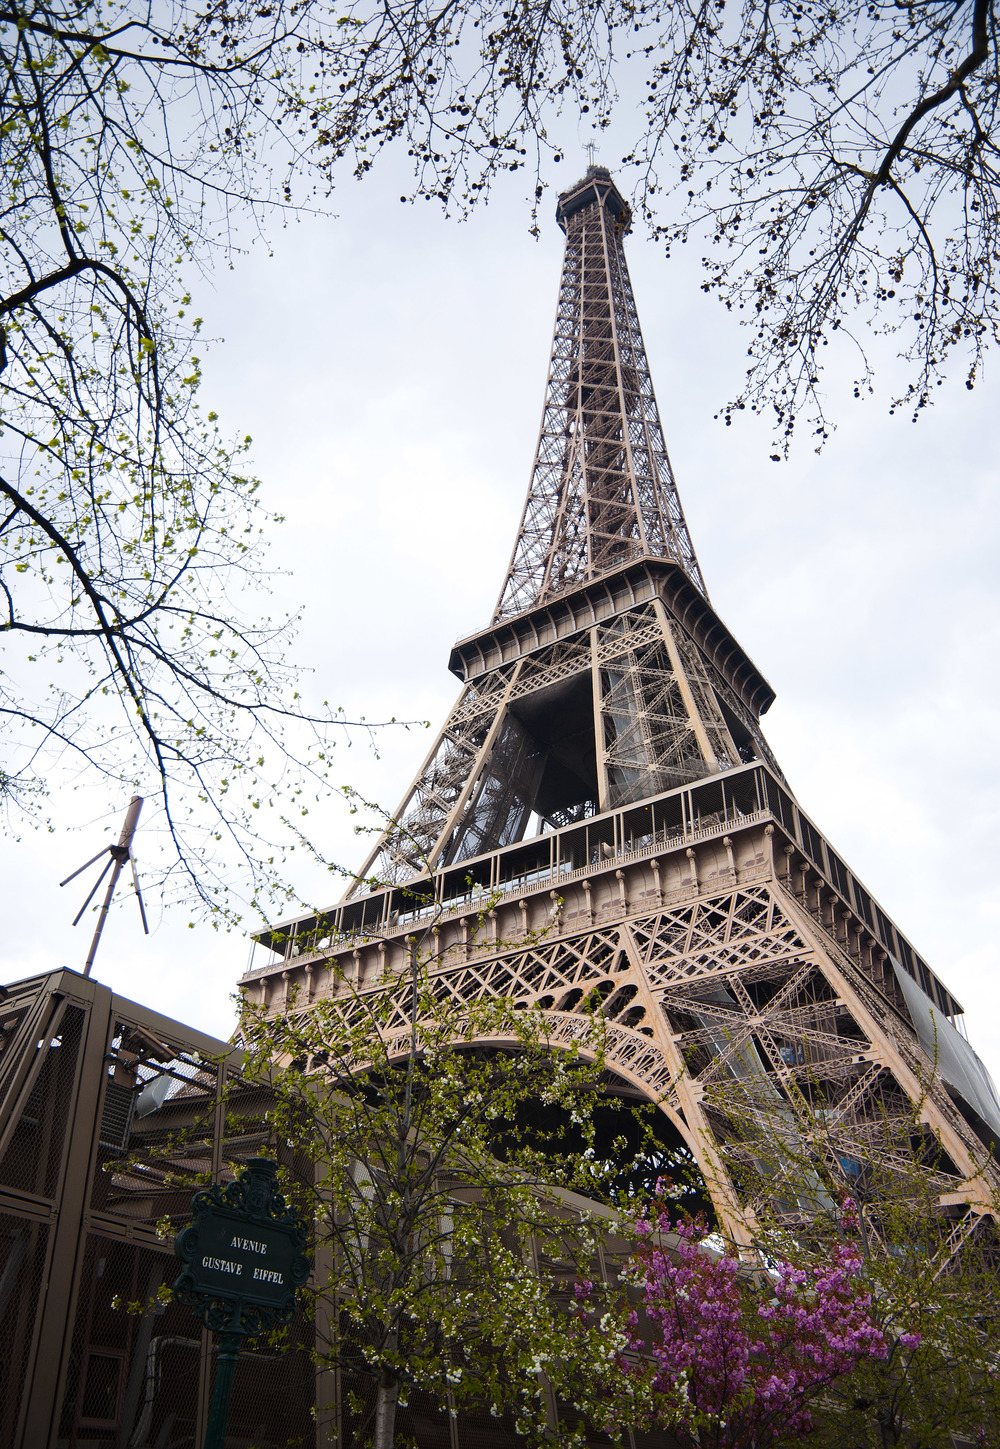 Built from 1887 to 1889, the Eiffel Tower was designed to sway as much as three inches in the wind.